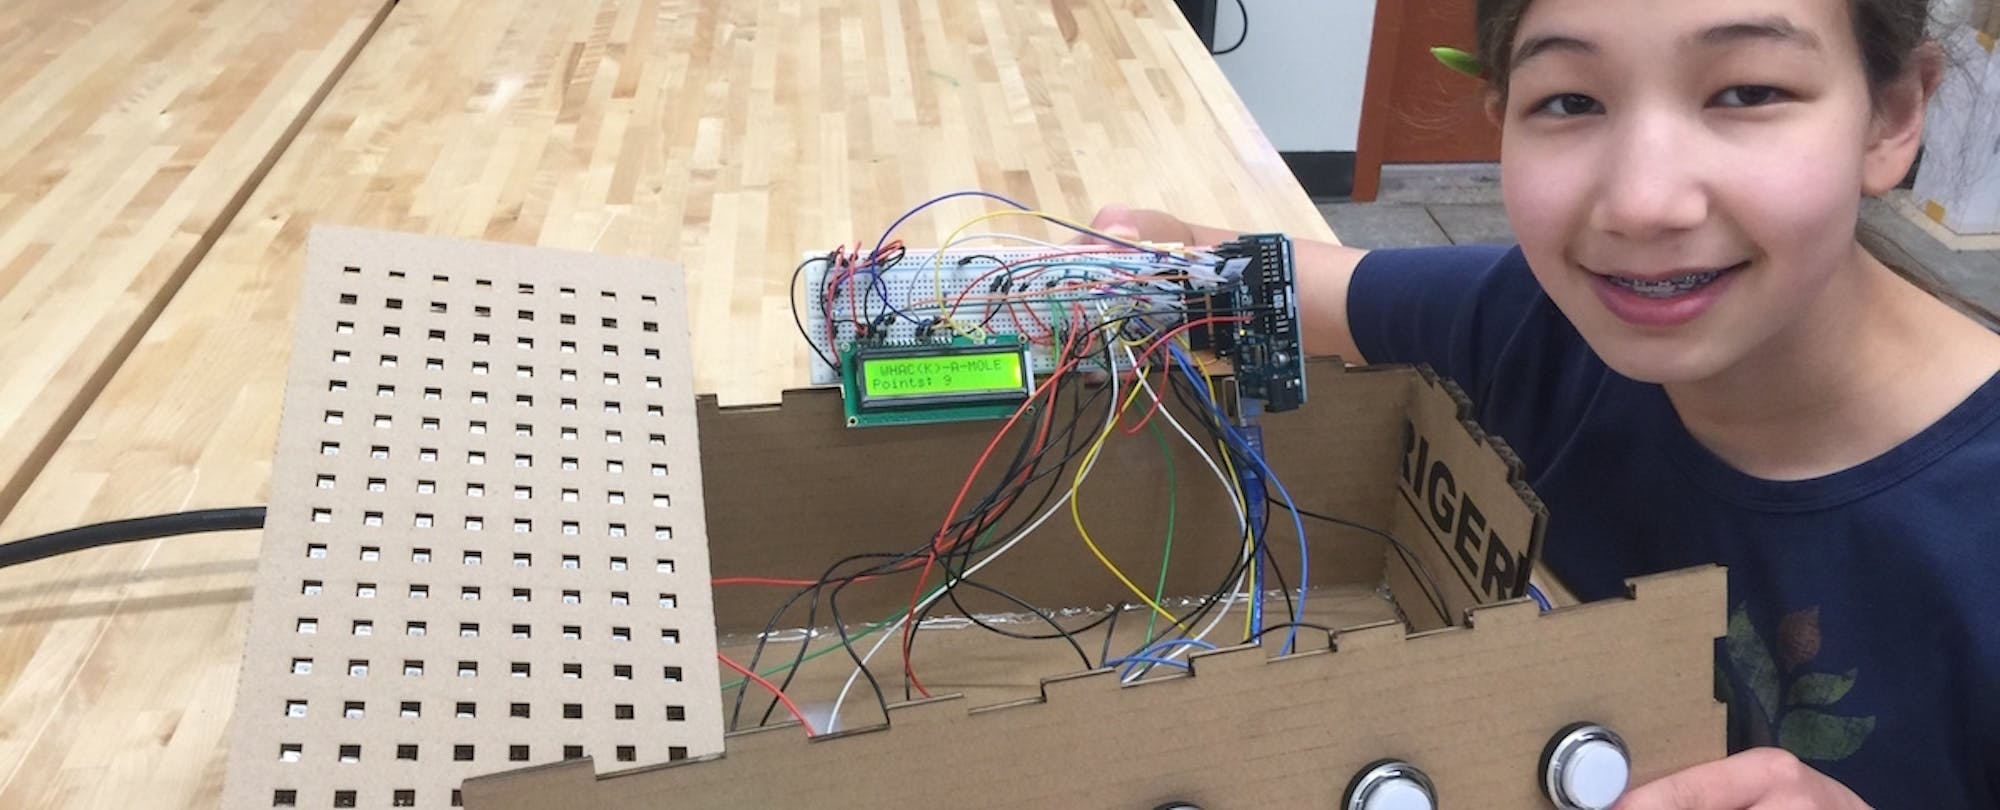 From Tinkering to Technology—Advice from a Middle School Maker